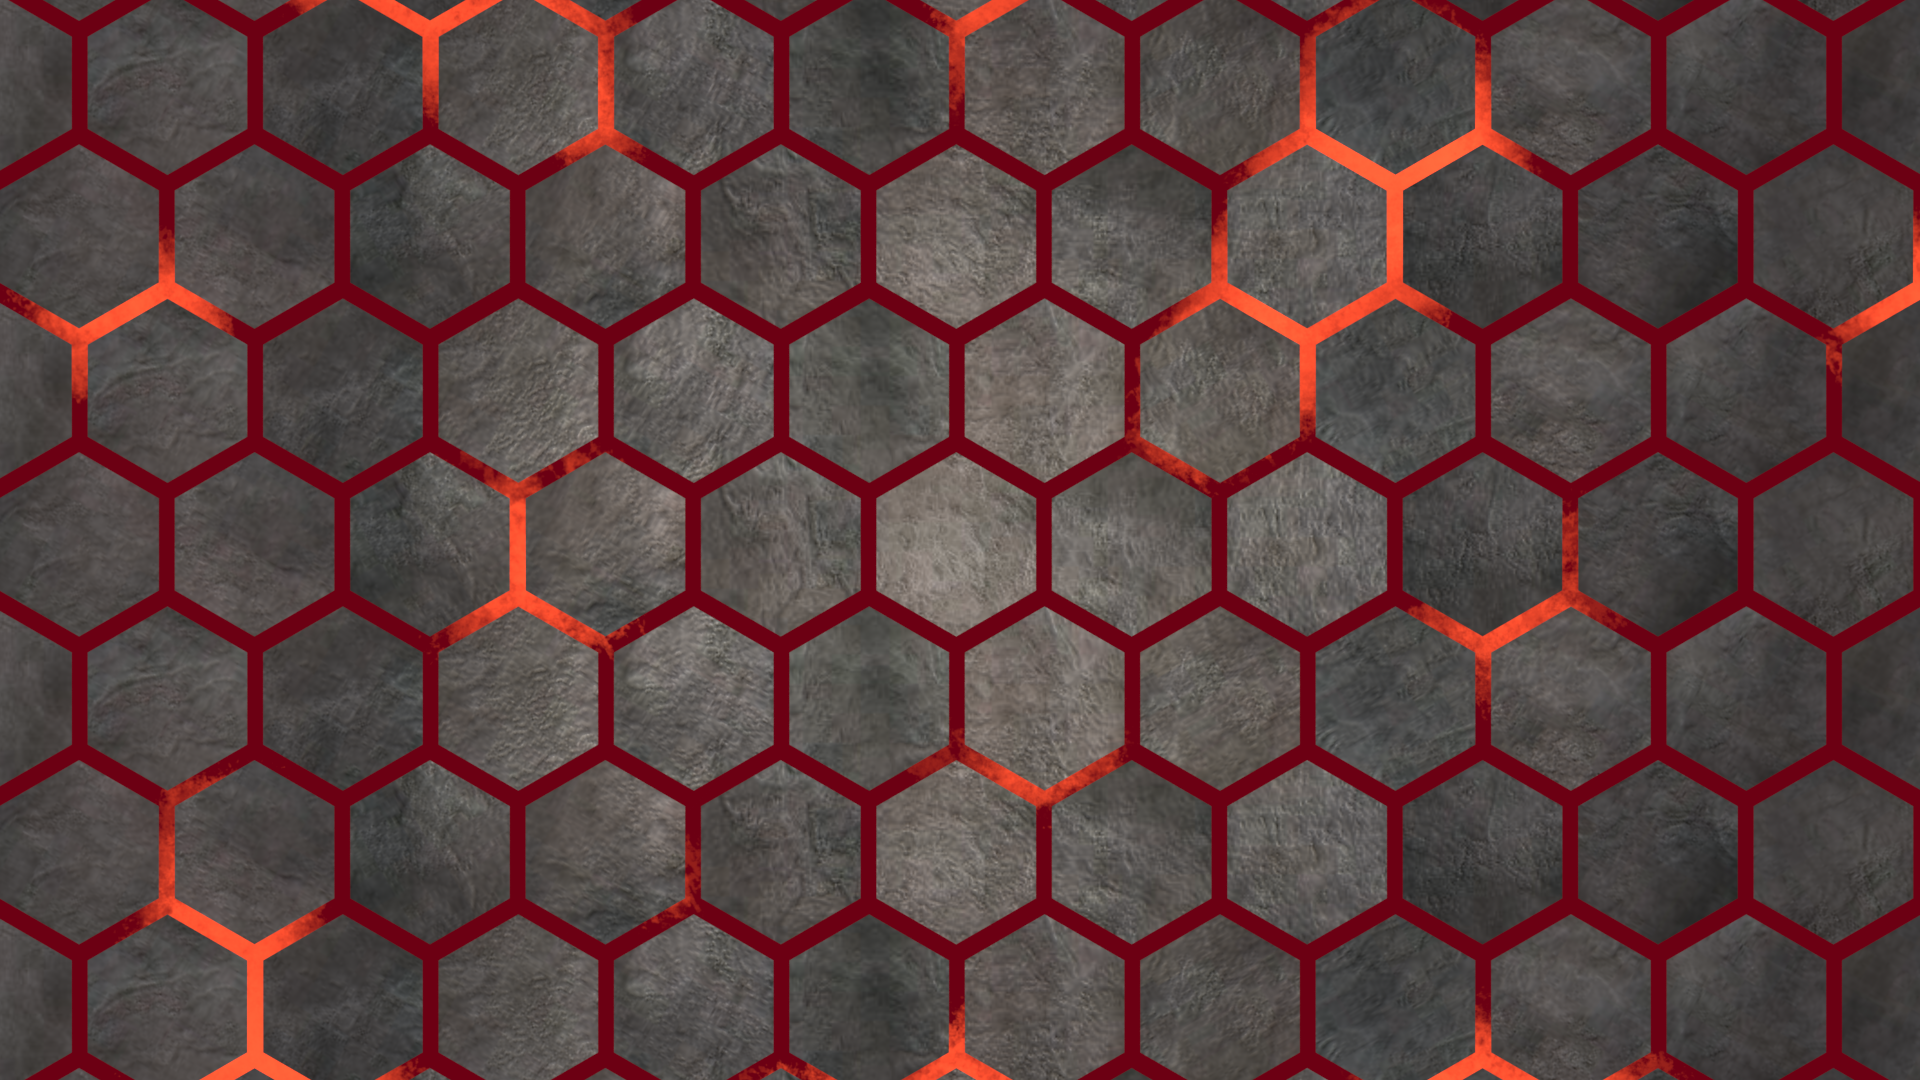 Stone Hexagonal Background Opengameart Org